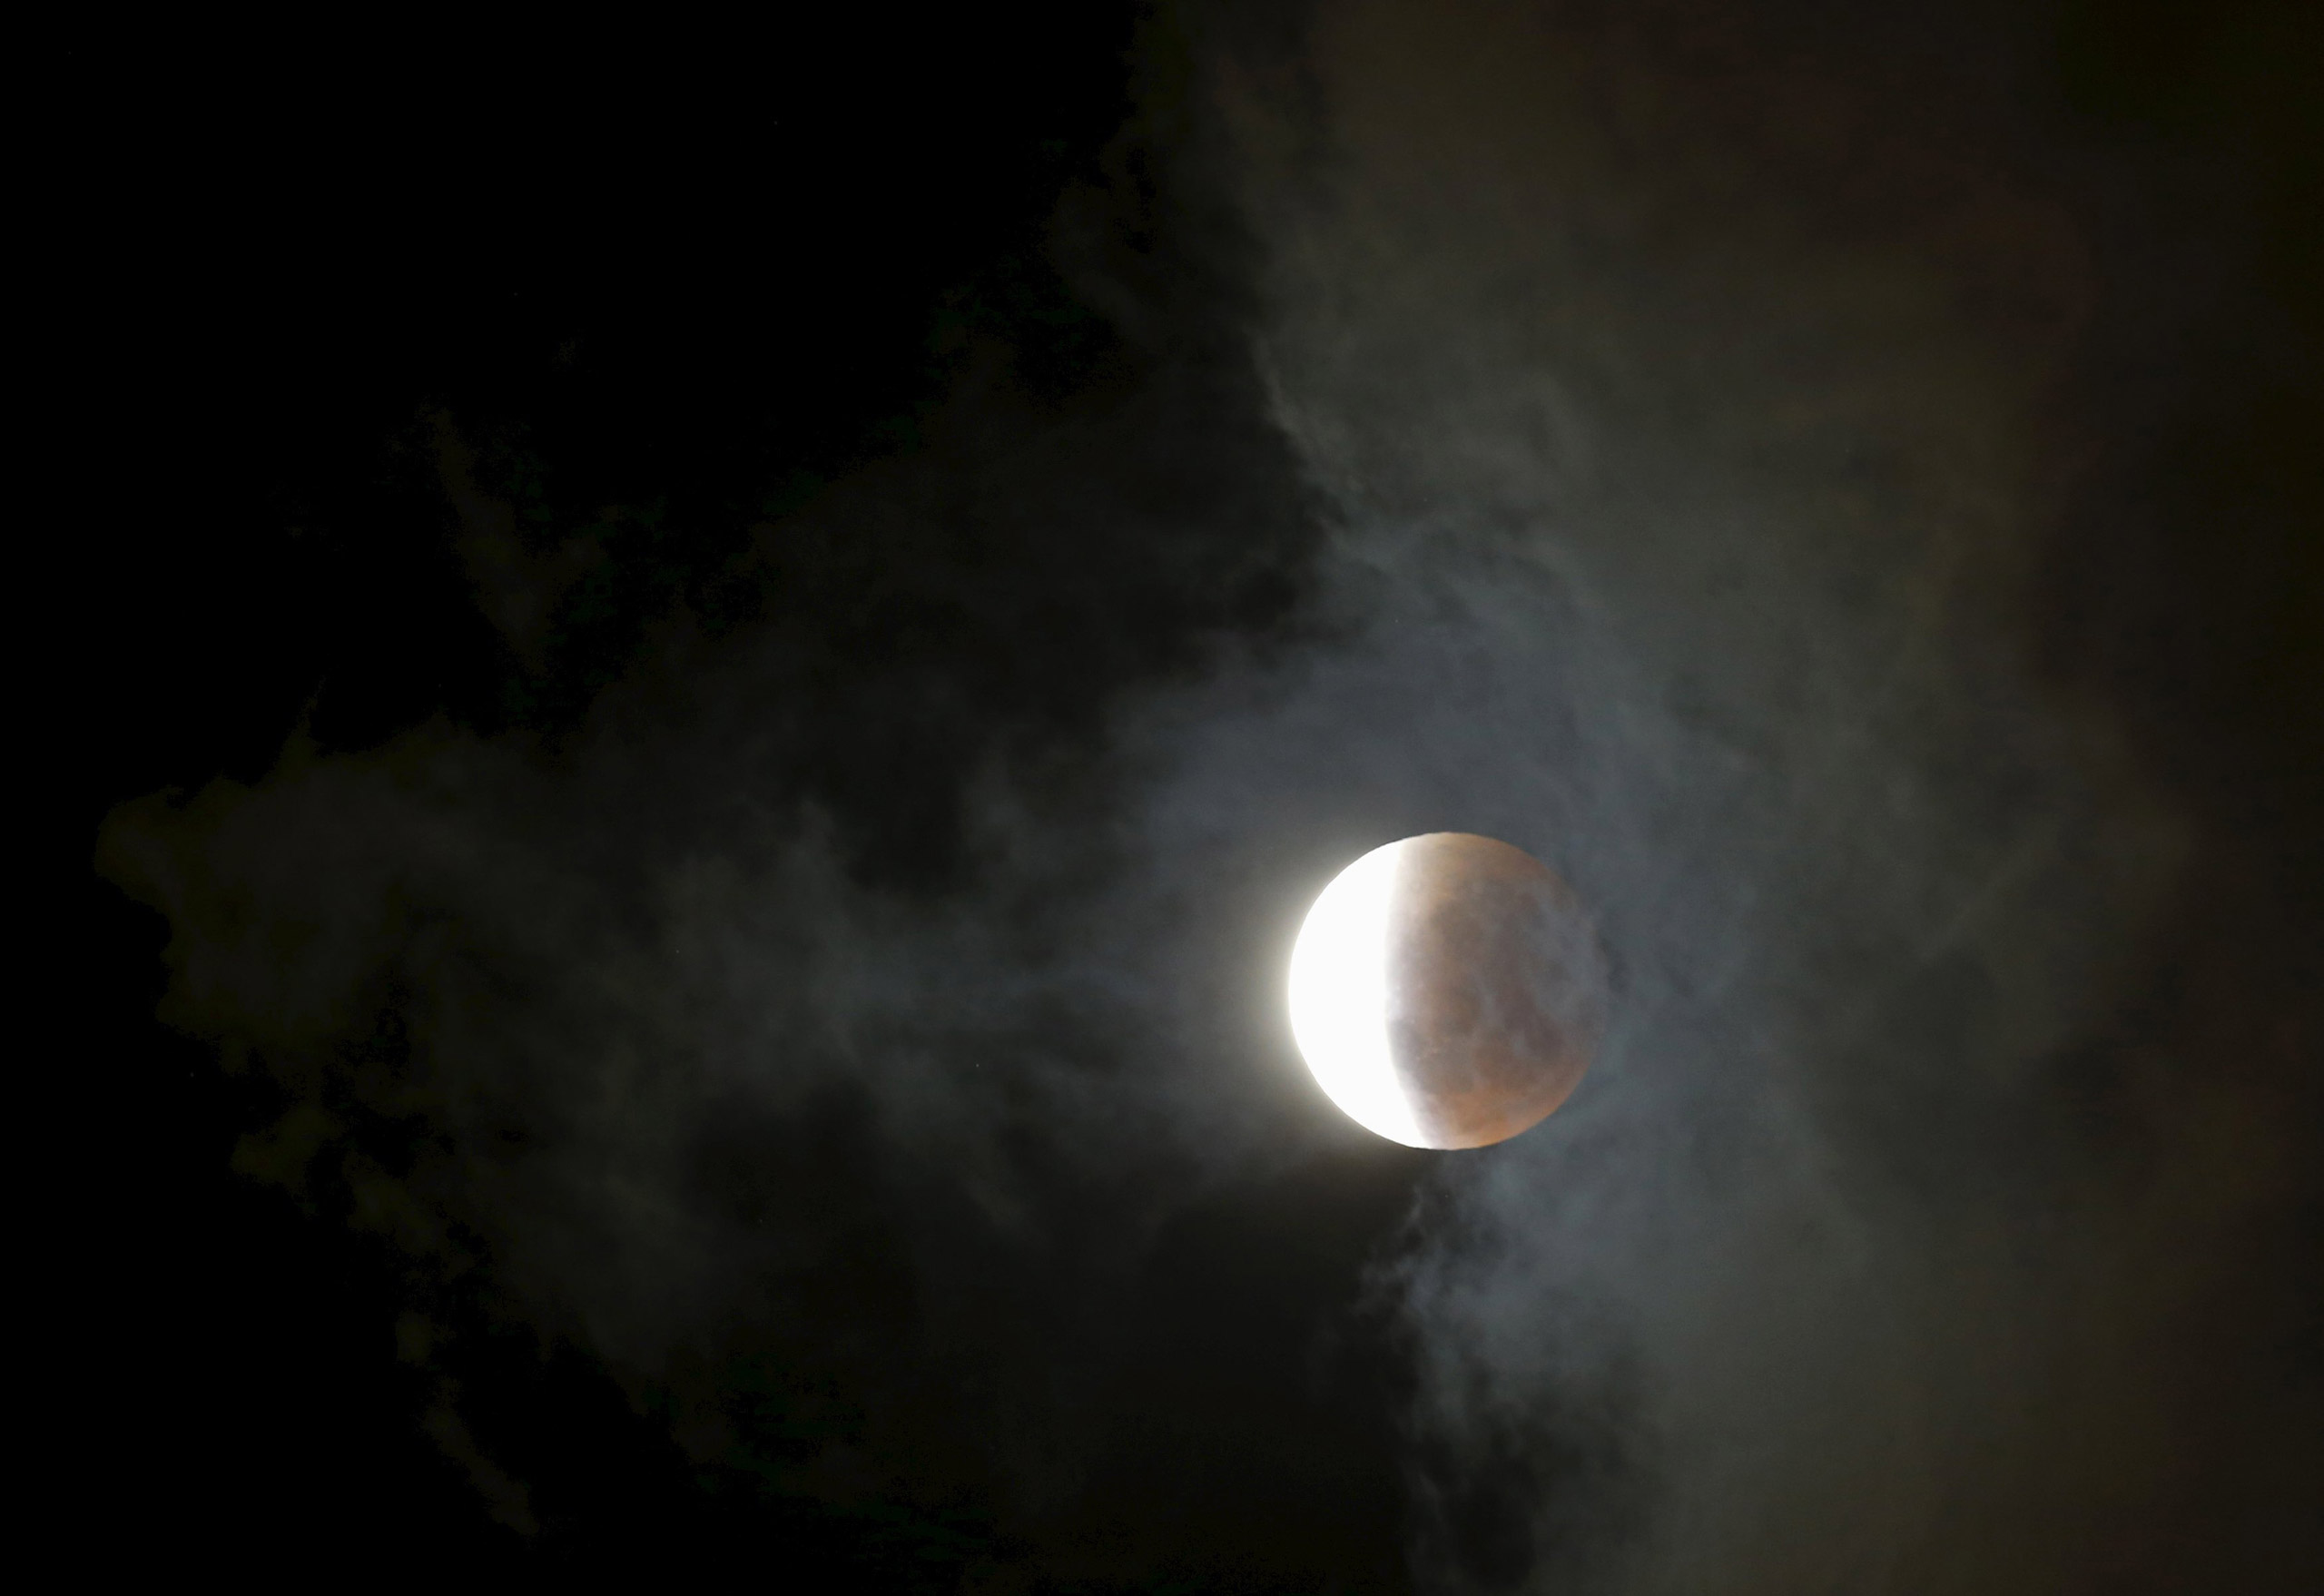 Clouds pass over the Supermoon as it is partially eclipsed over Cape Town on Sept. 28, 2015.